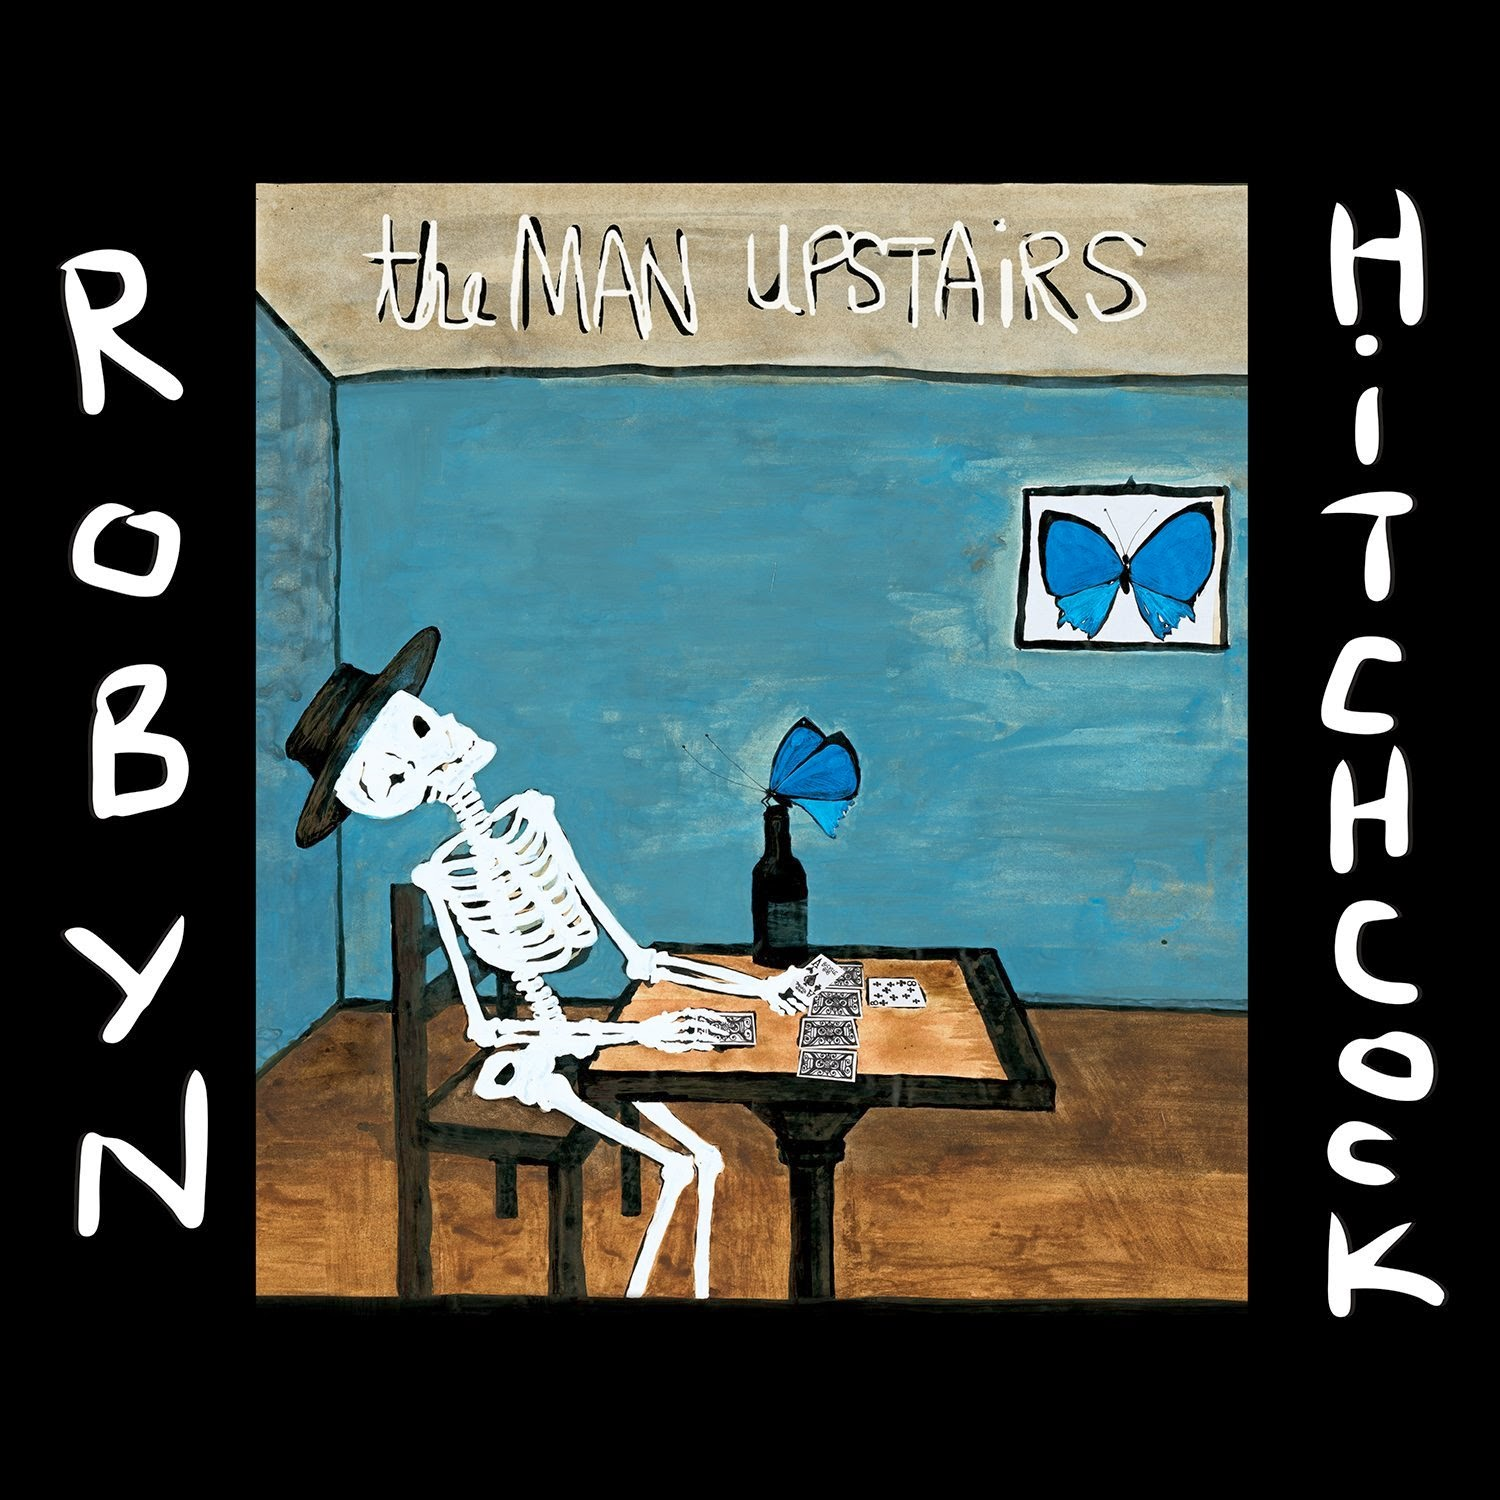 ROBYN HITCHCOCK - (2014) The man upstairs